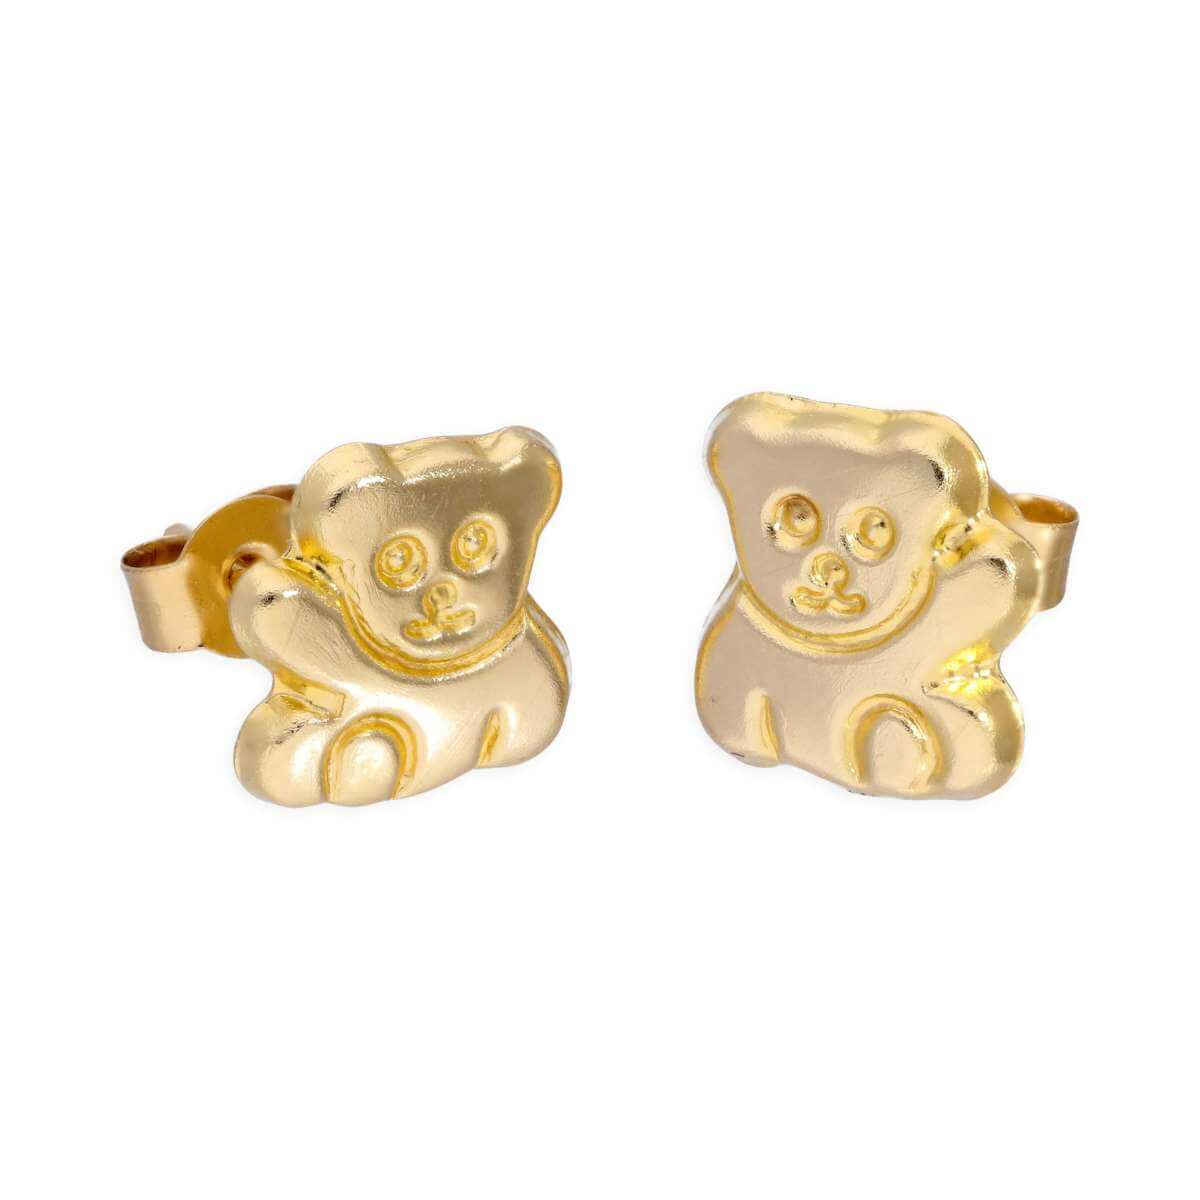 9ct Gold Waving Teddy Bear Stud Earrings